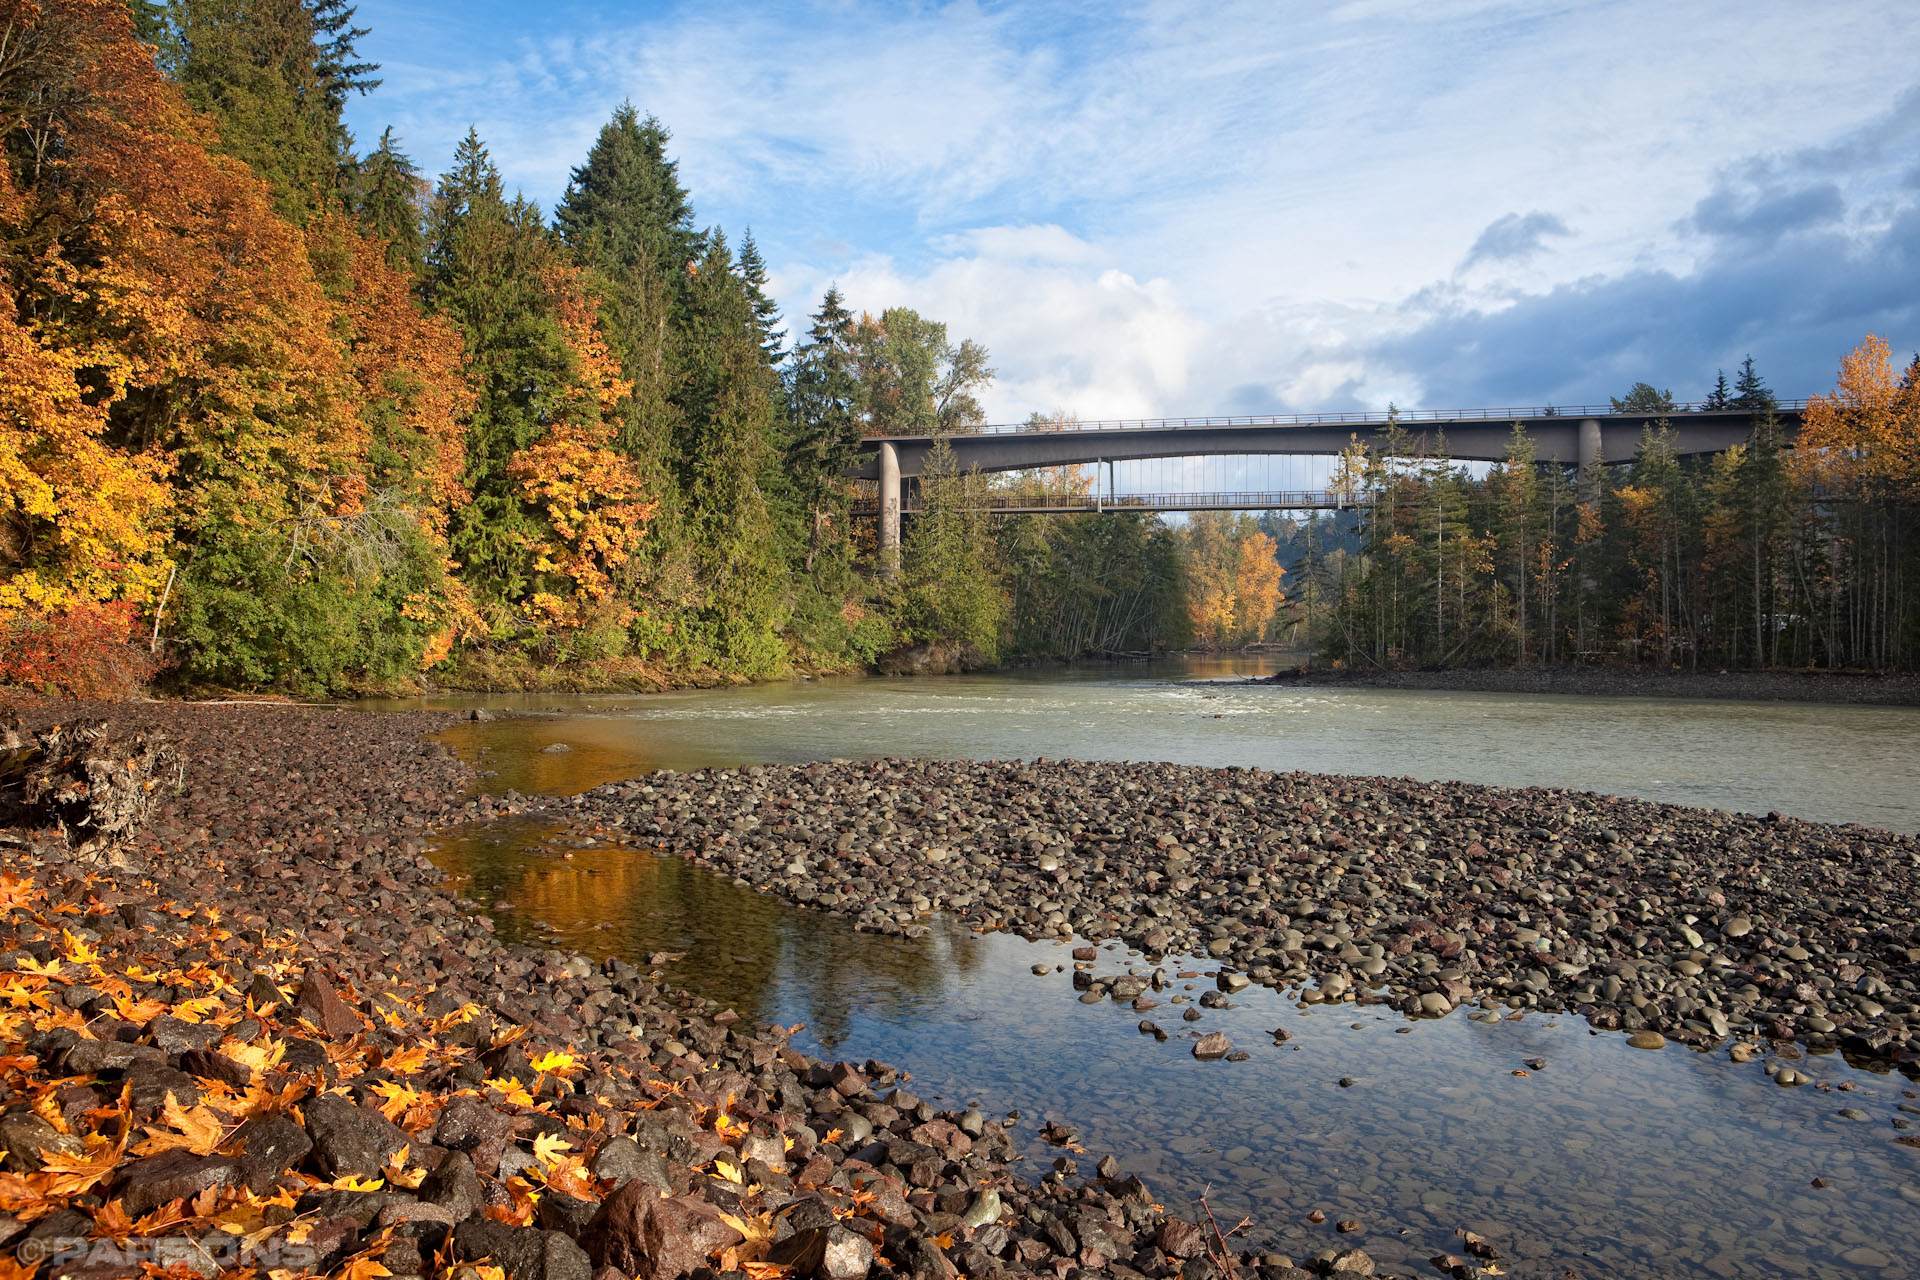 Civil-Engineering-Elwha-River-Bridge-Washington-Port-Angeles.JPG